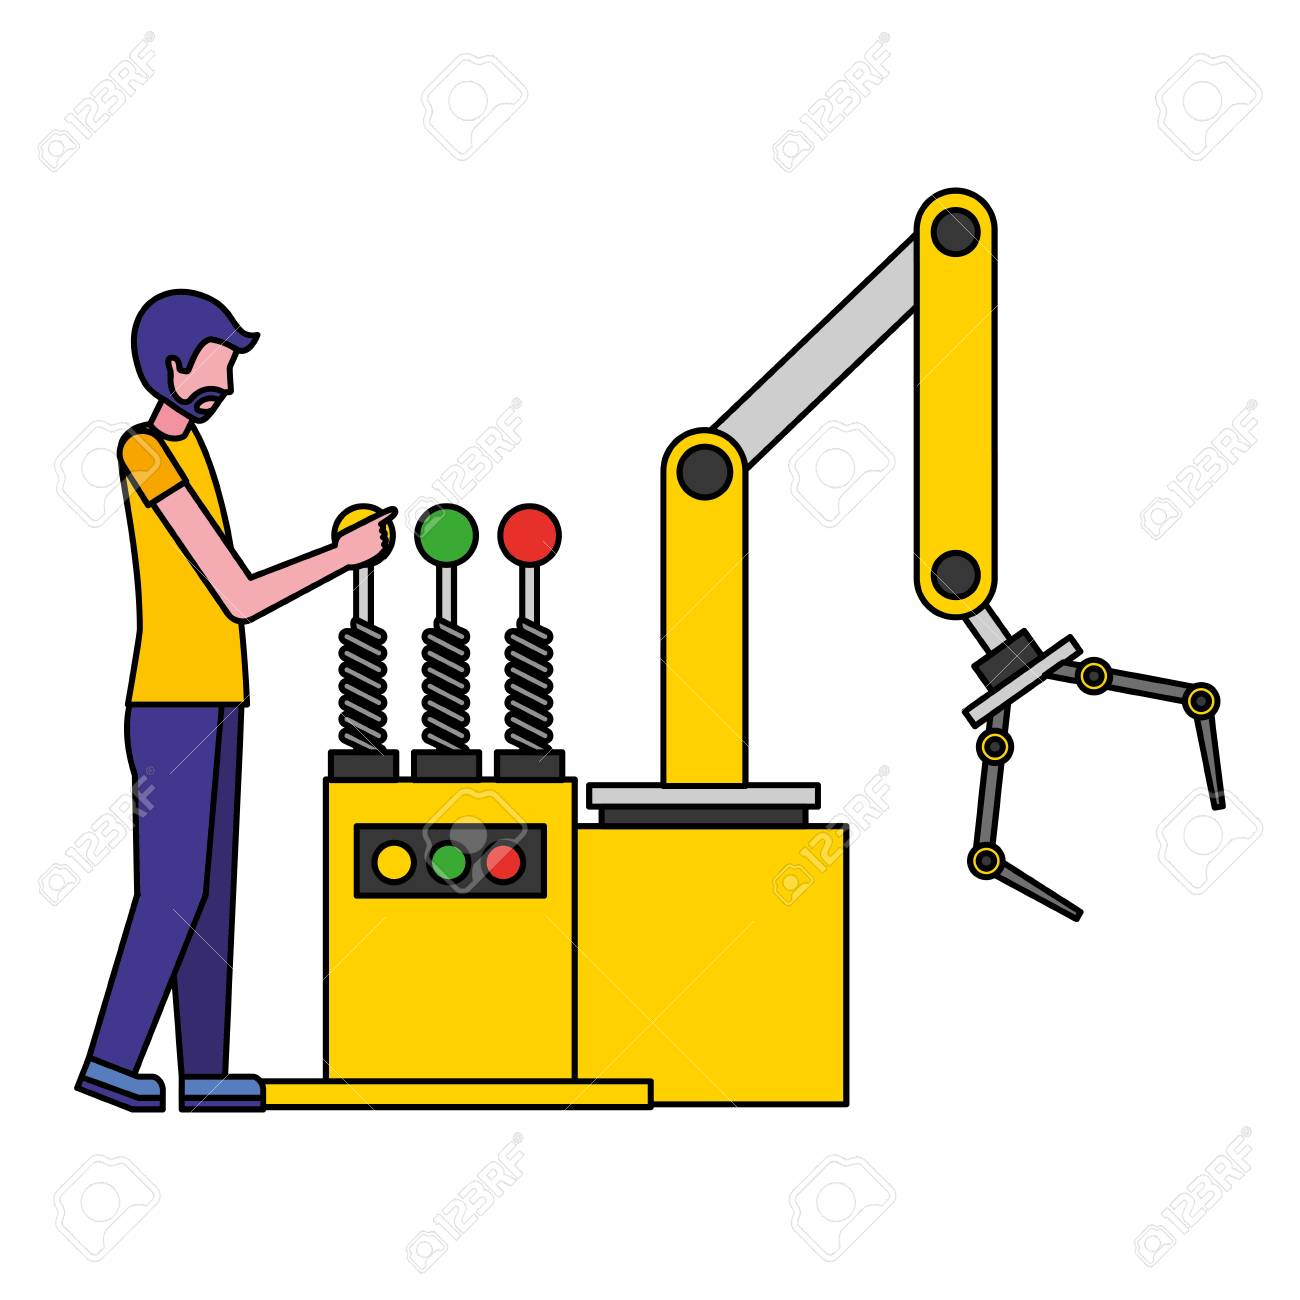 Gear clipart machinery, Gear machinery Transparent FREE for download on  WebStockReview 2020